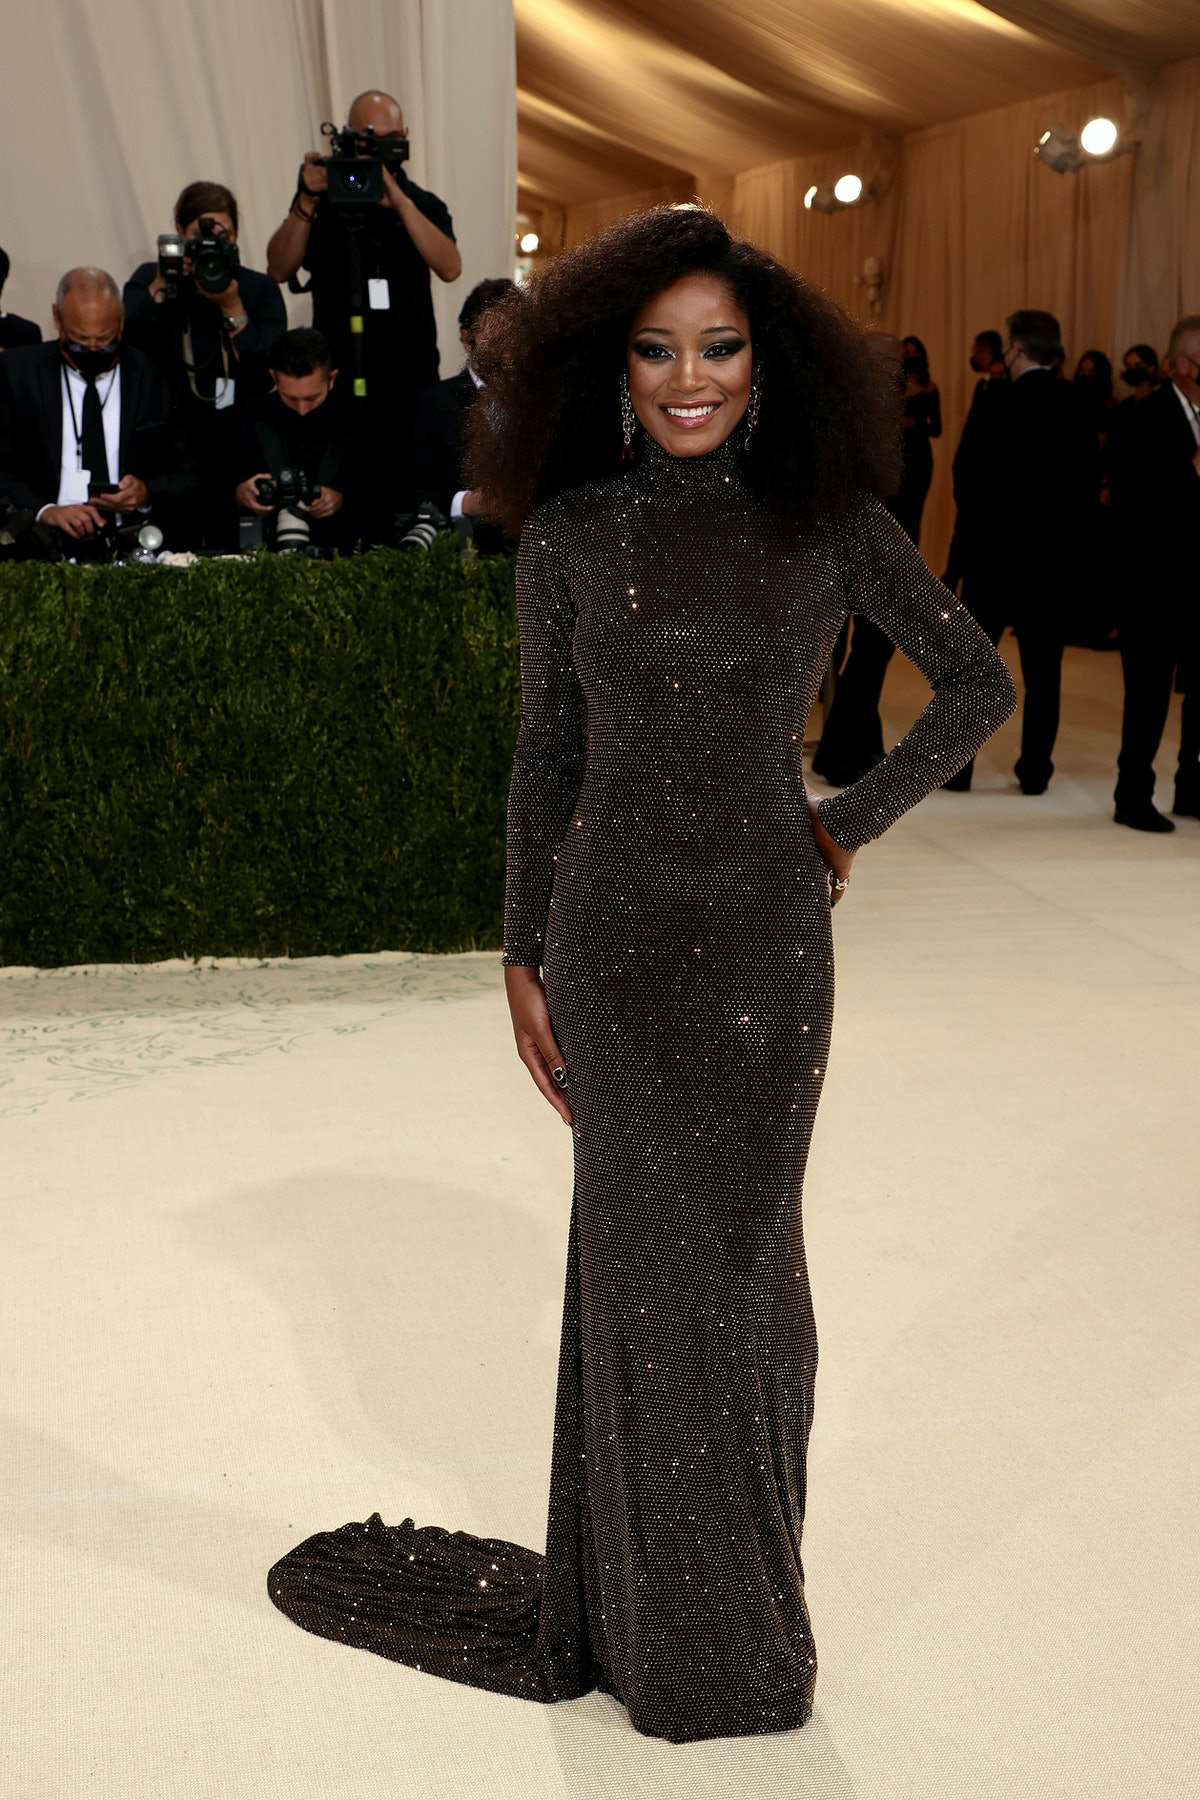 Keke Palmer attends The 2021 Met Gala Celebrating In America: A Lexicon Of Fashion at Metropolitan M...